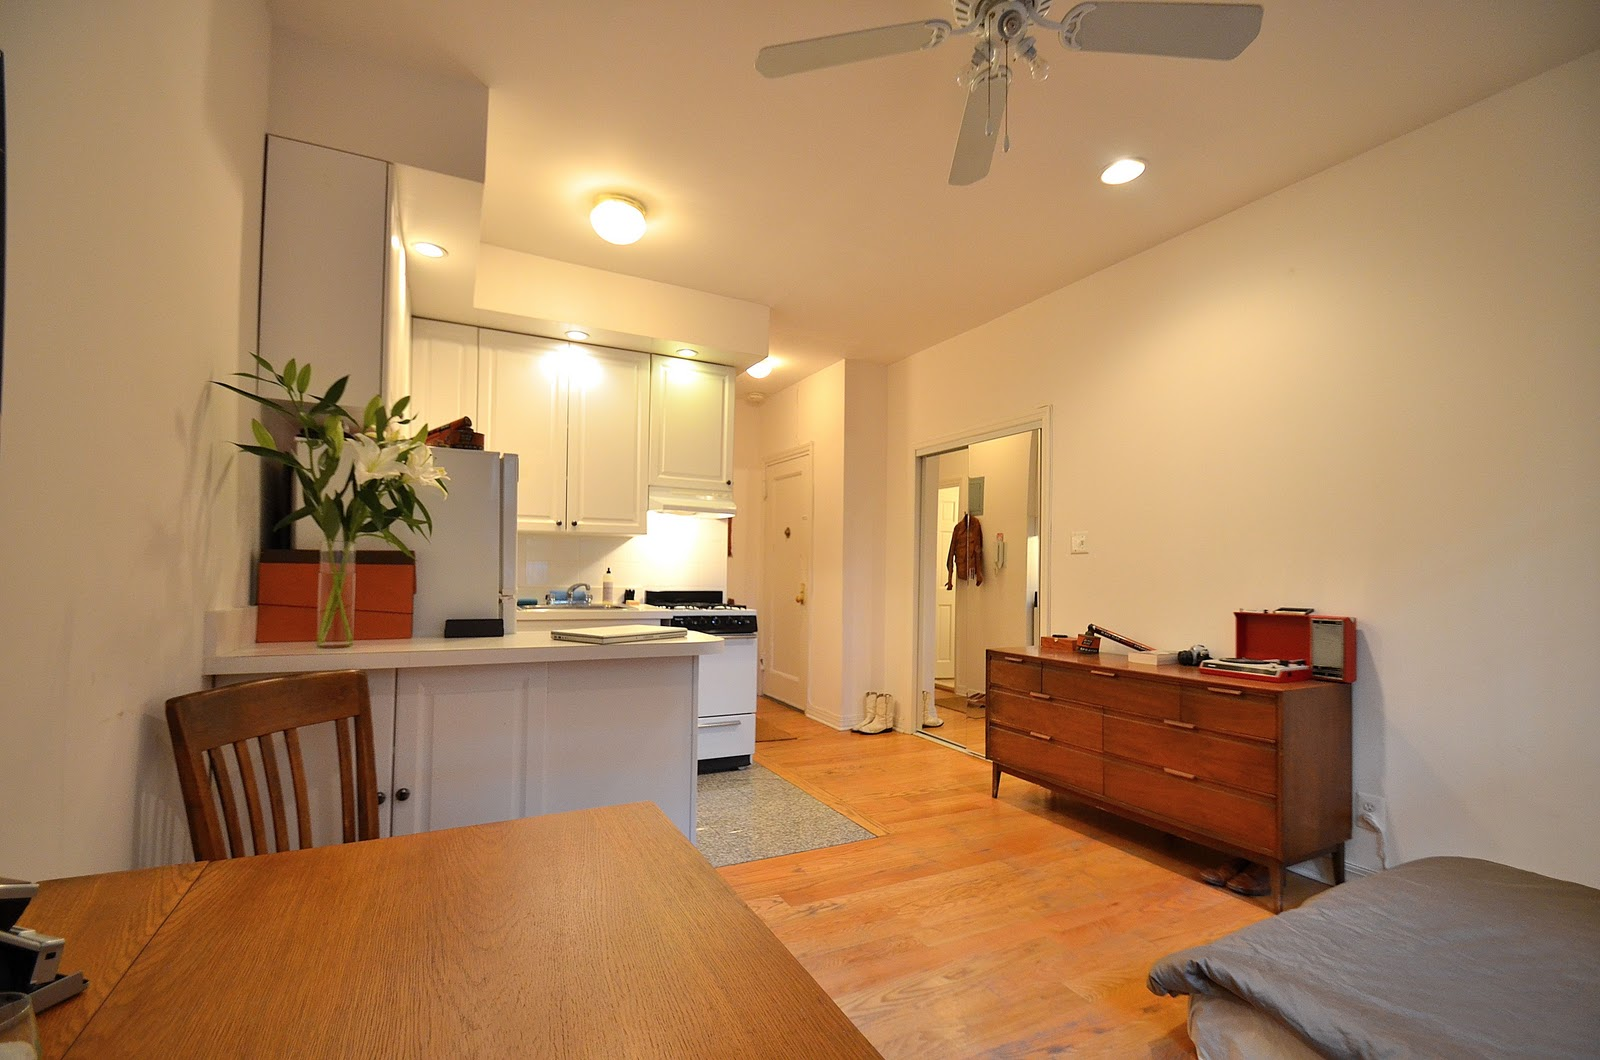 City living apt blog welcome nyc east village studio for - Pictures of studio apartments ...